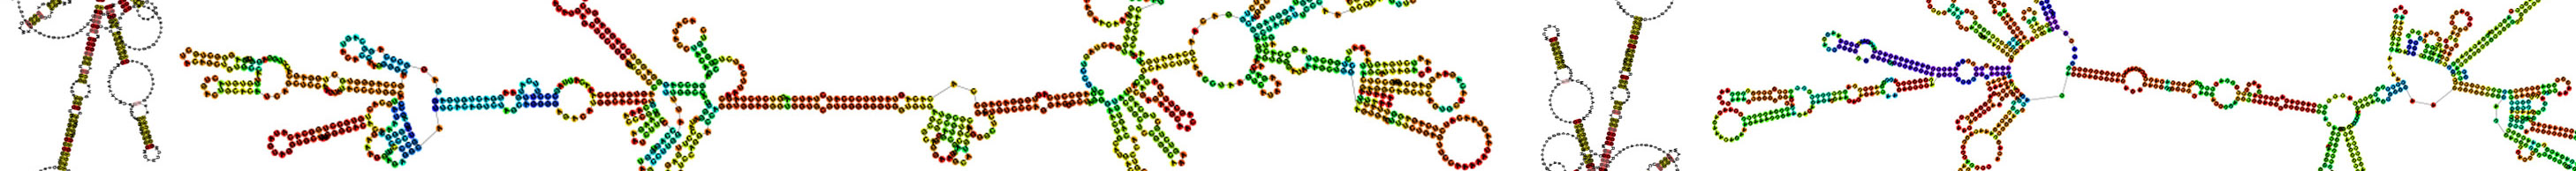 decorative banner for the Non-coding RNAs Kraus Lab Research Page